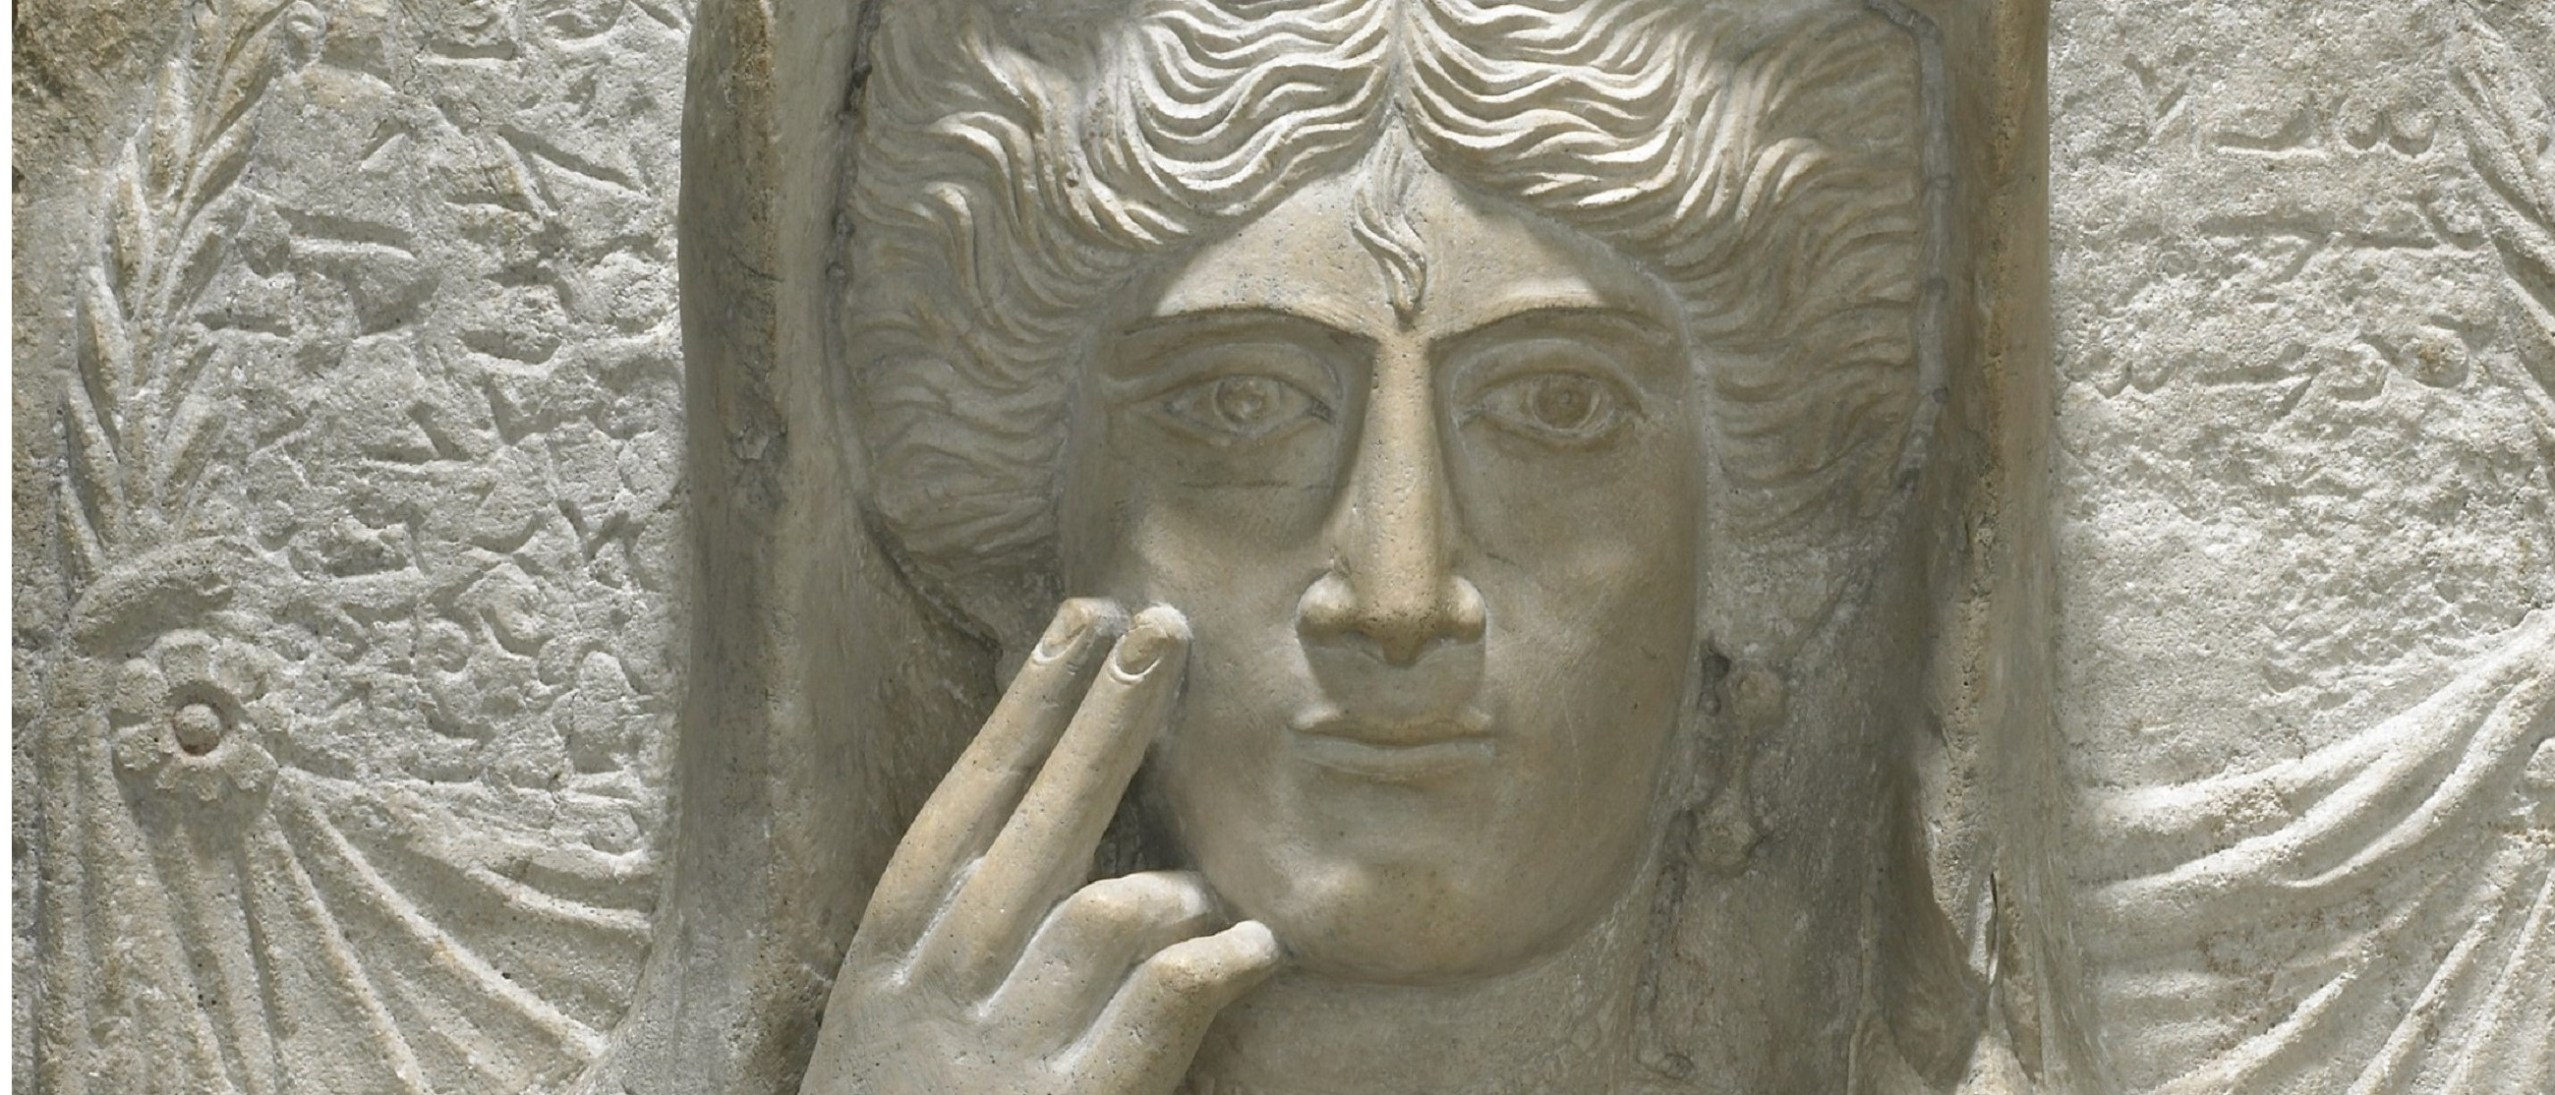 Detail image, Funerary Relief Bust, Syria, 3rd century (dated 231 CE), Limestone, 60.1 x 55.3 x 23 cm, F1908.236